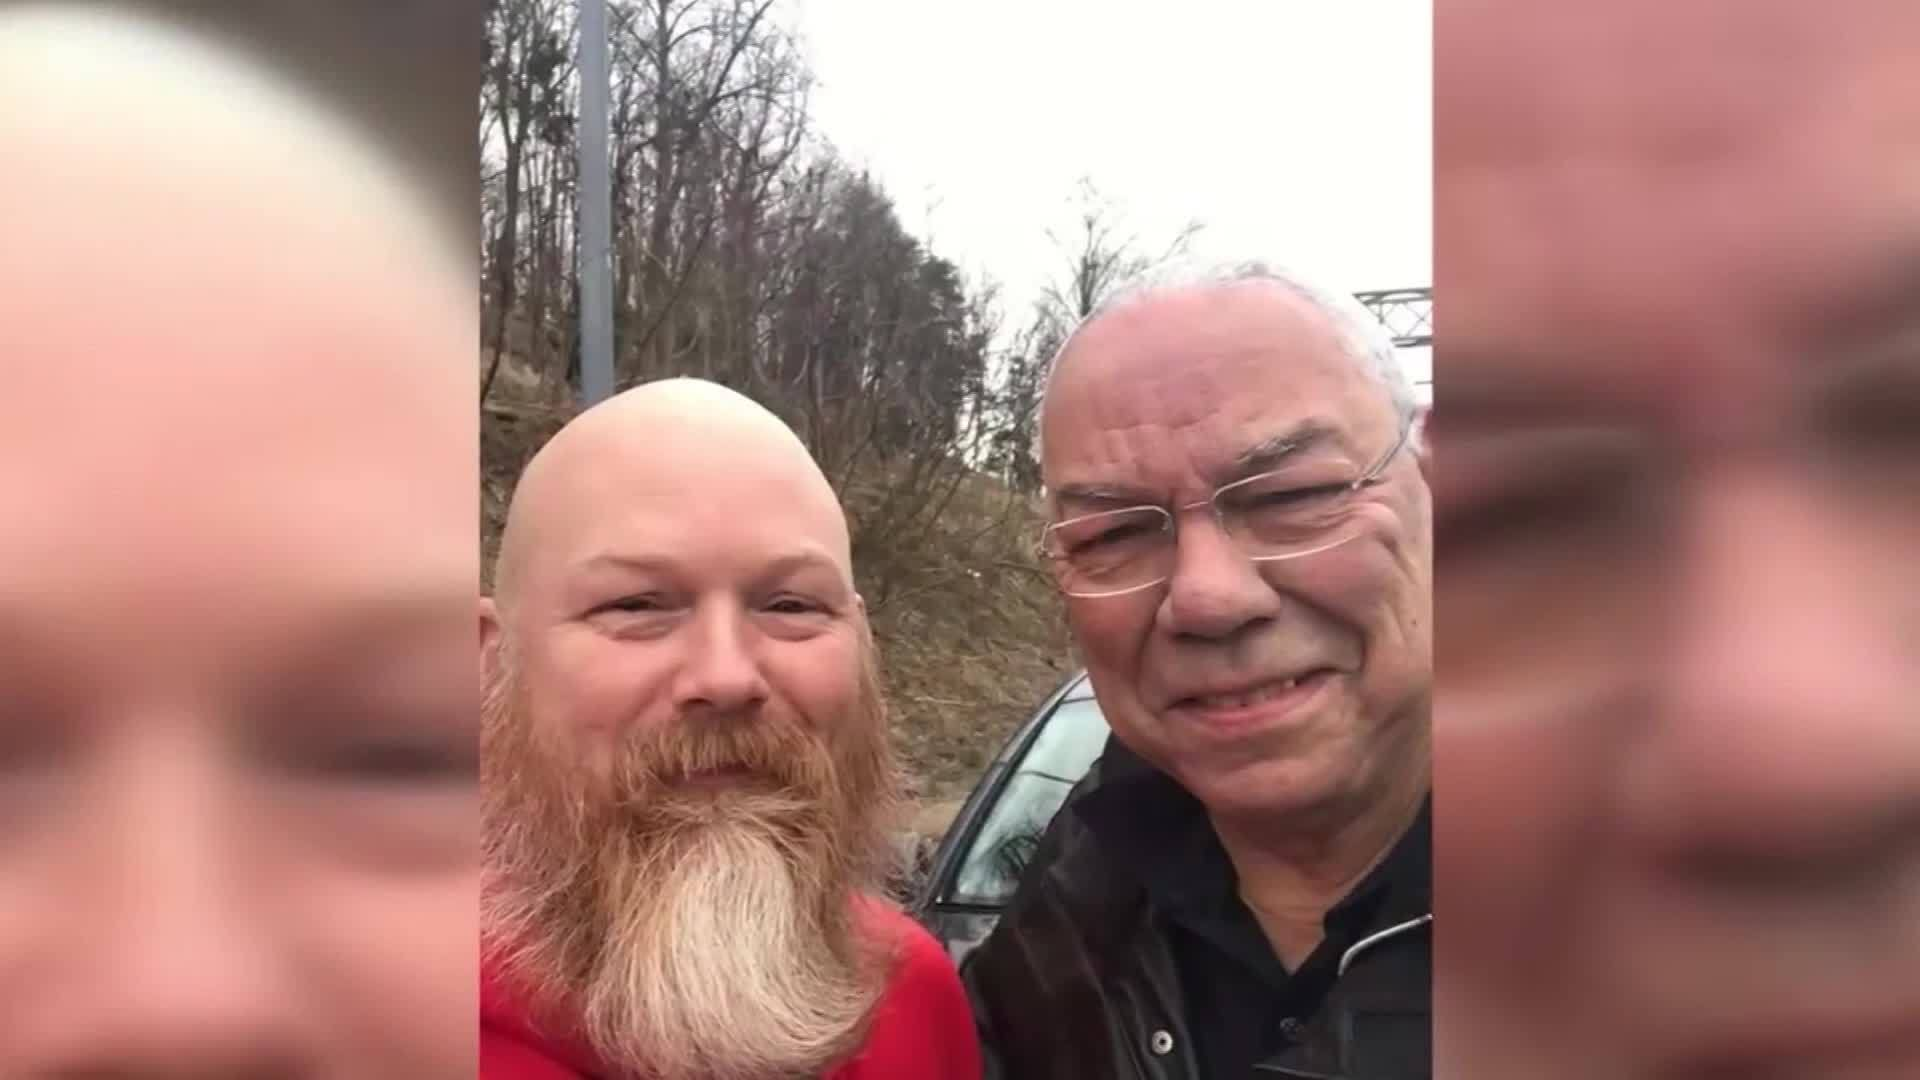 Man who lost leg in Afghanistan helps Colin Powell with flat tire